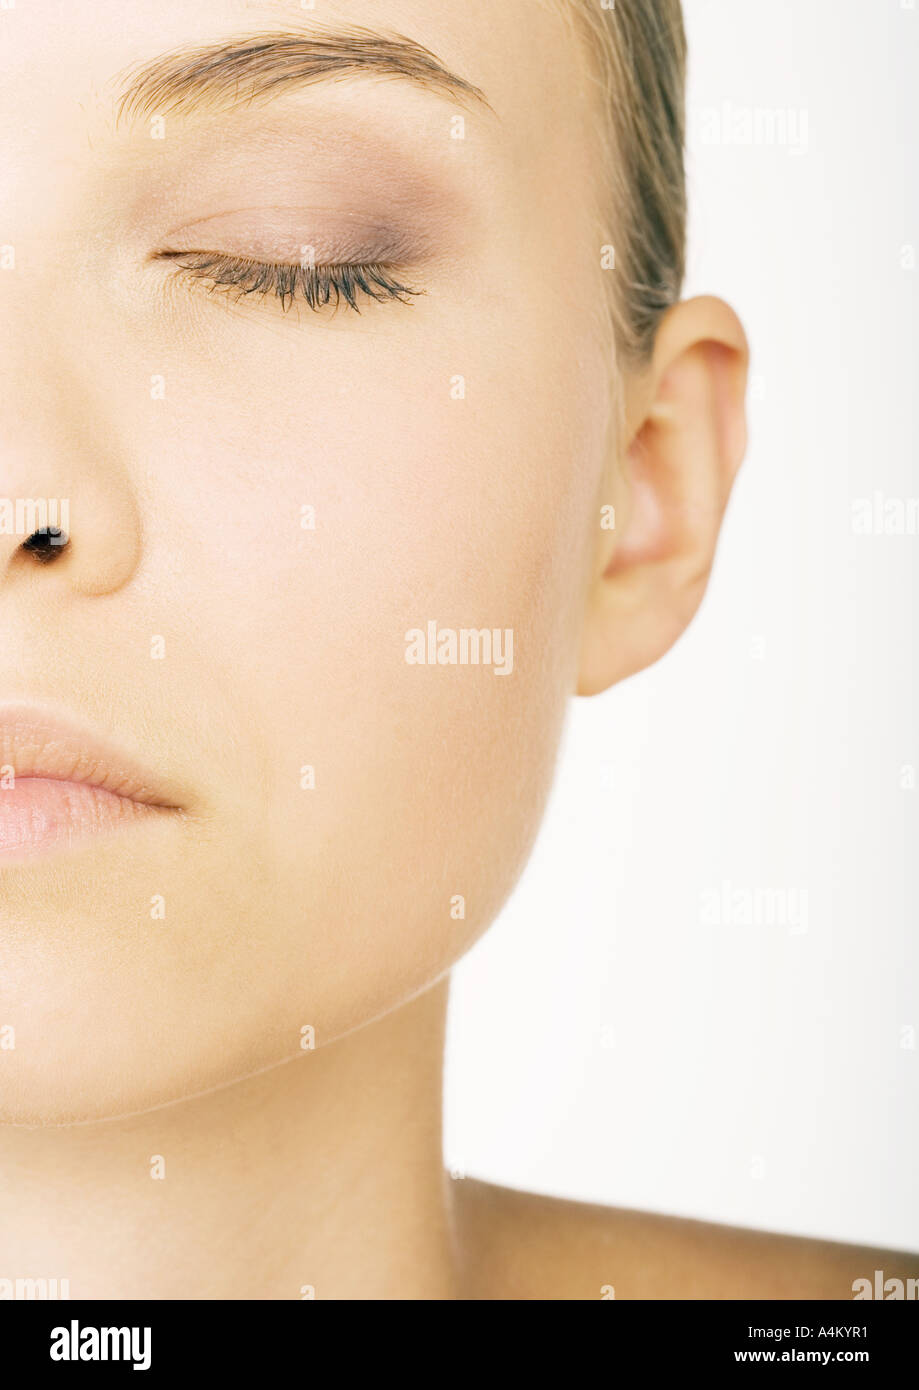 Woman's face, partial view Stock Photo